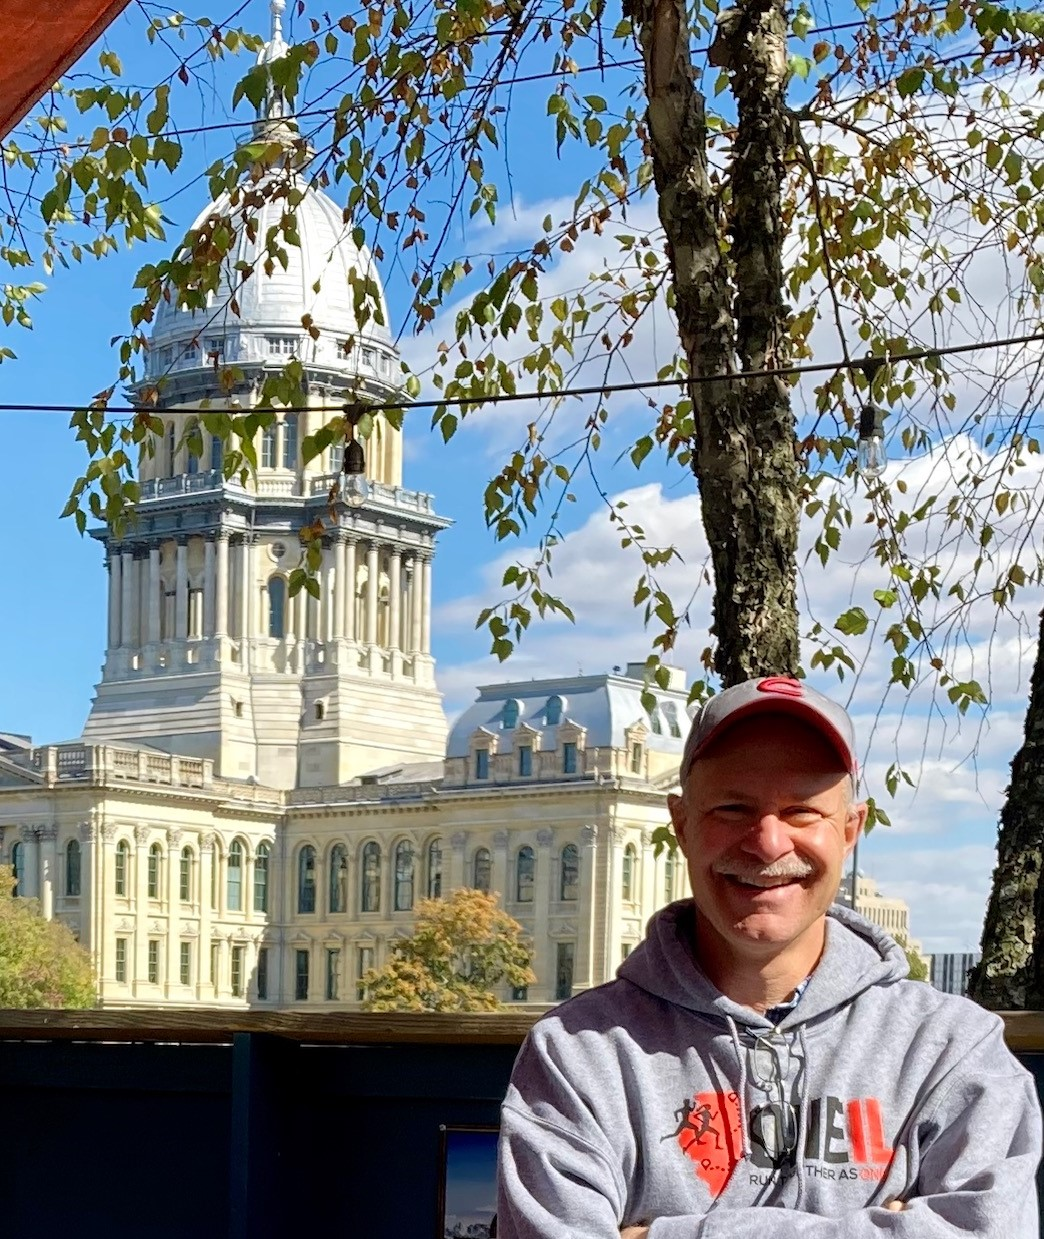 joens-capitol-backdrop-october-2020